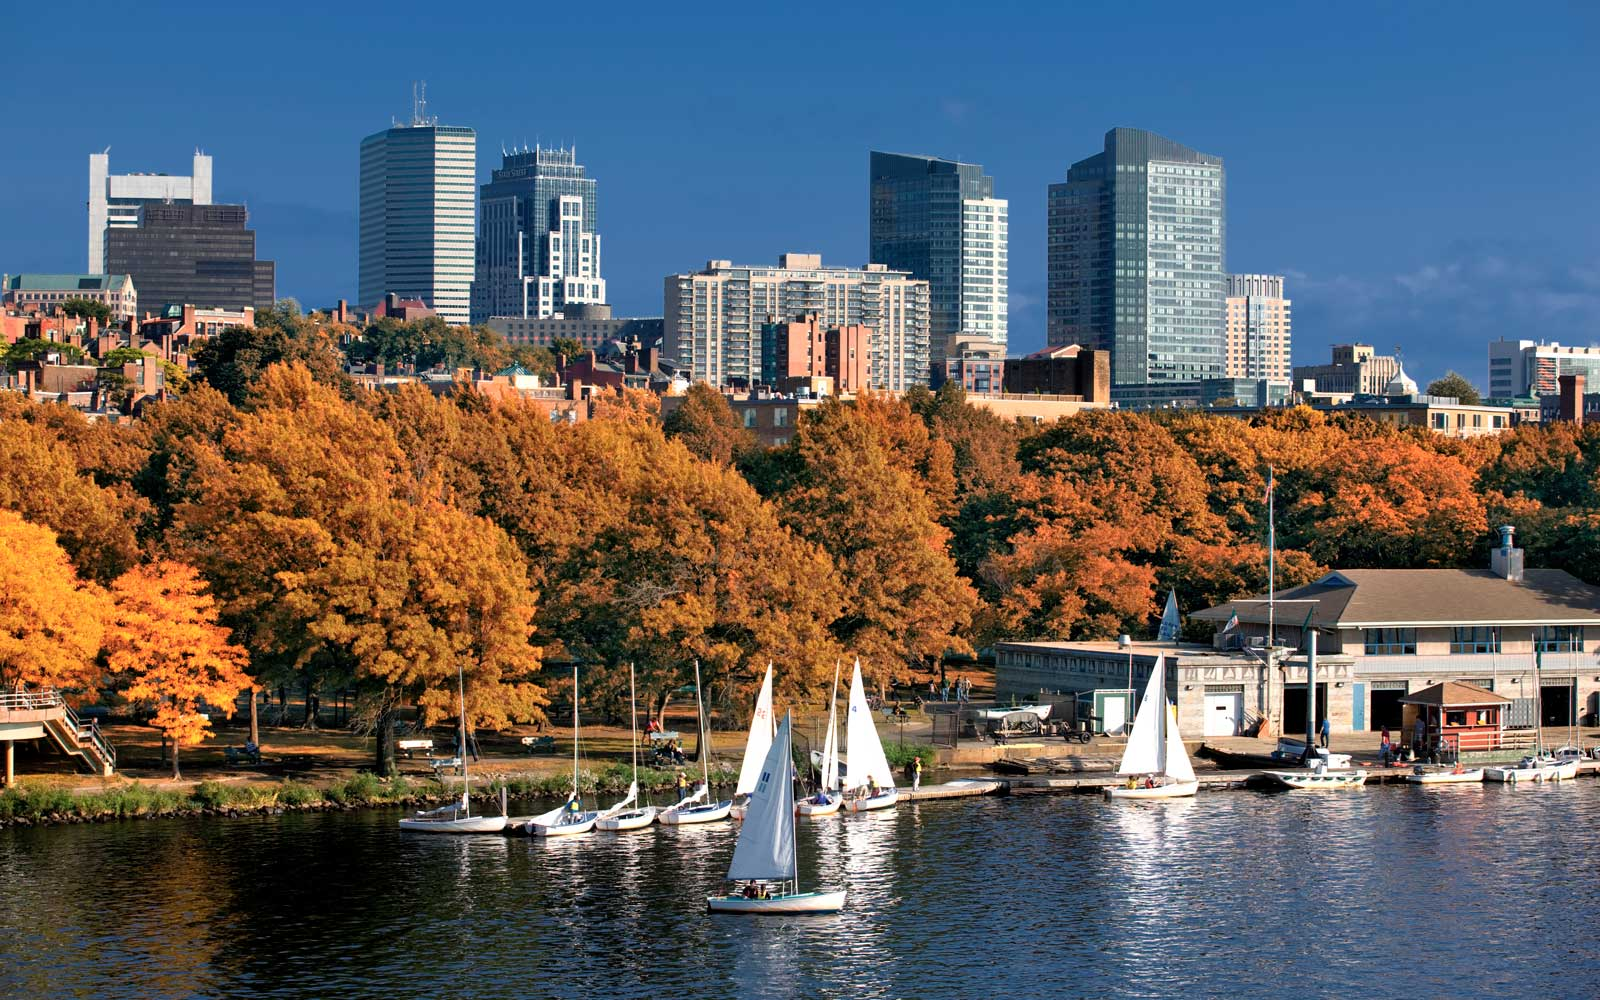 Boston skyline and Charles river, Massachussets, USA.